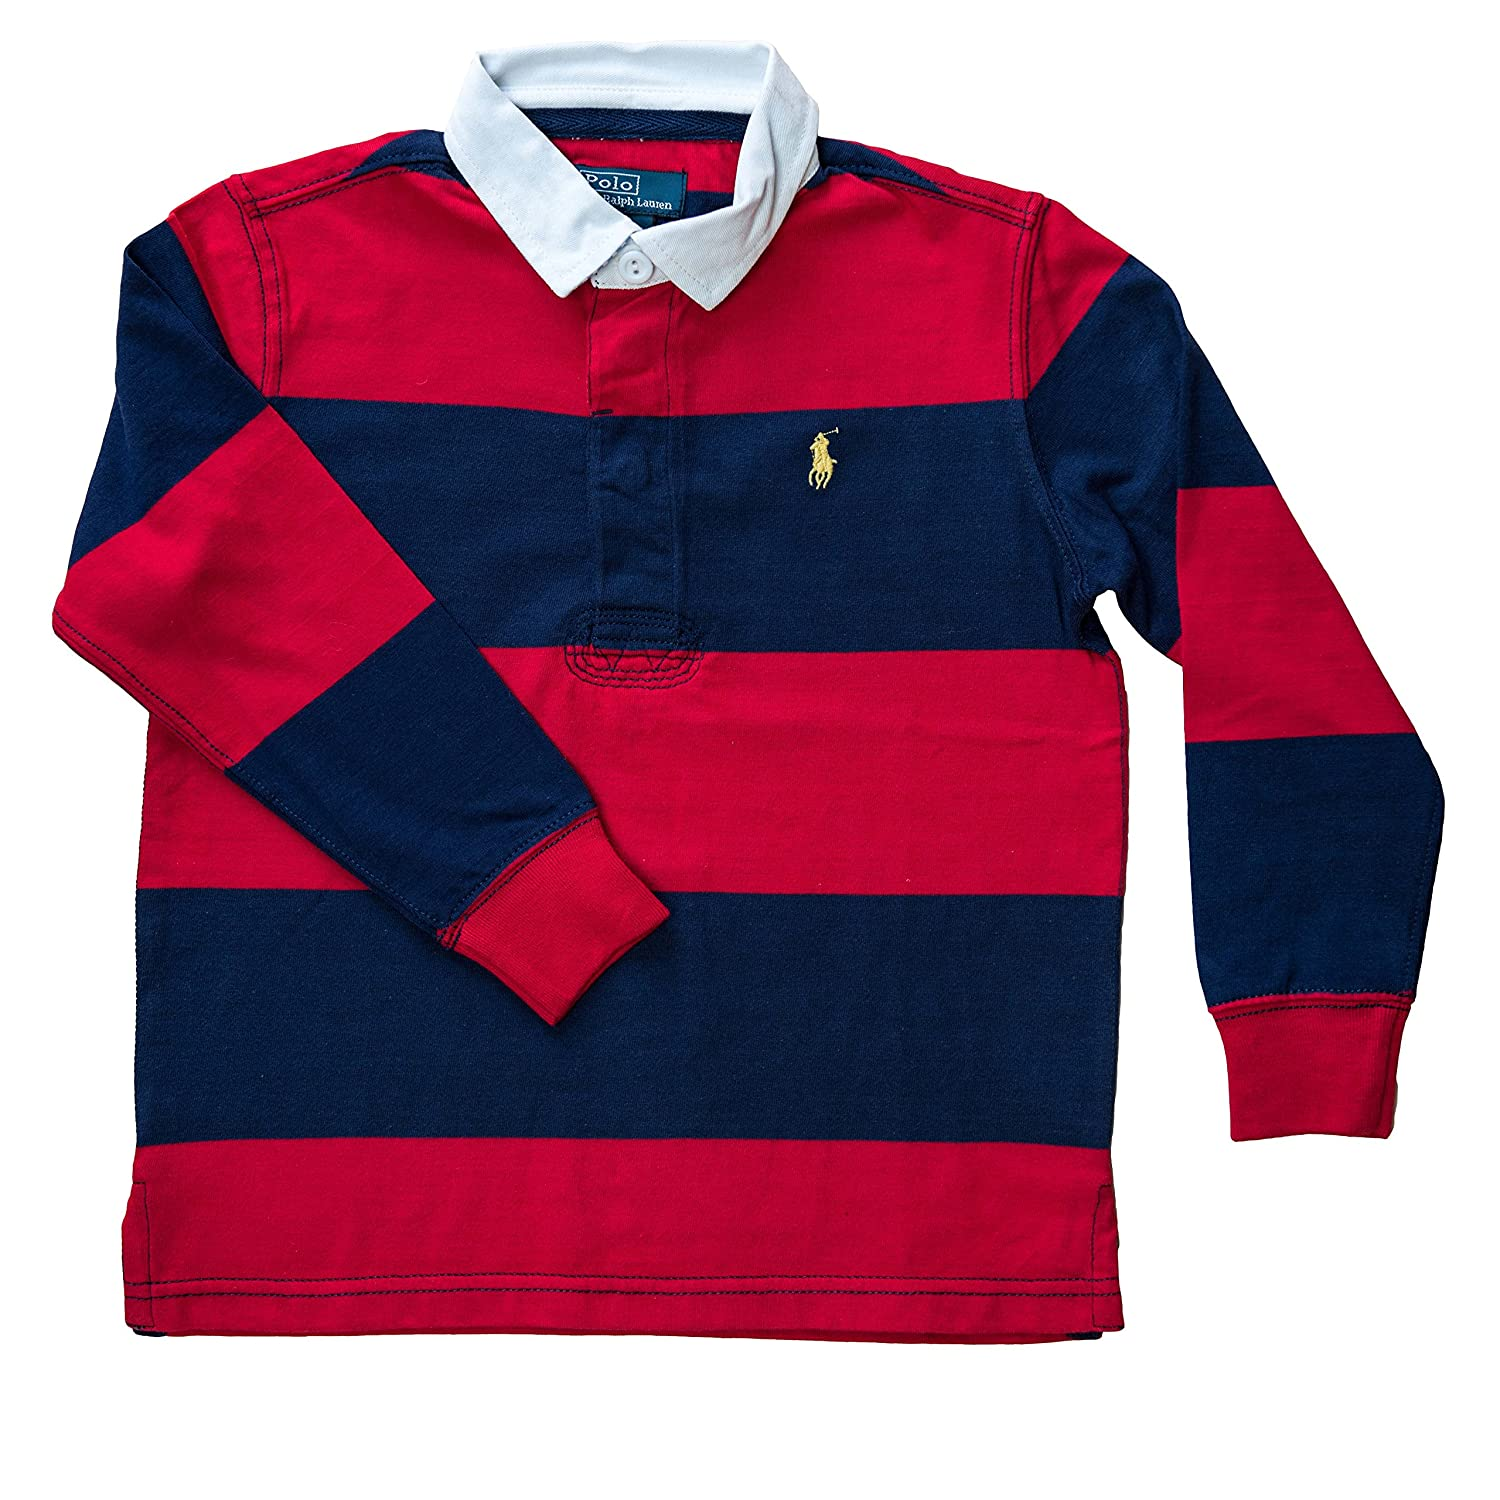 polo rugby shirts